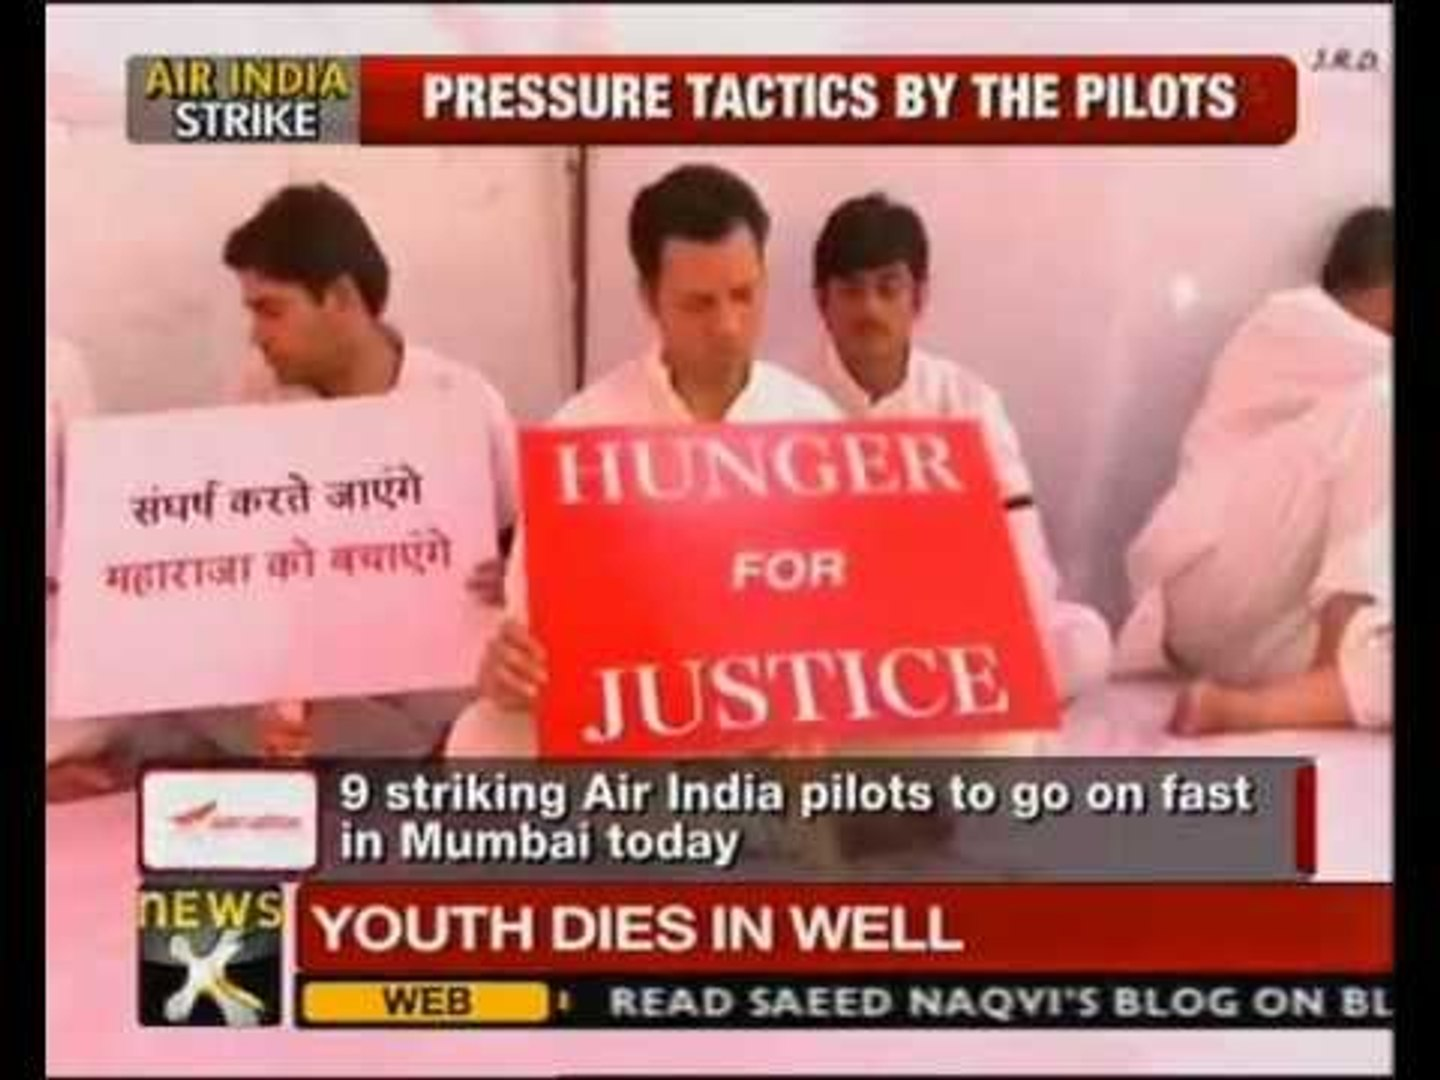 Air India pilots' strike enters Day 50 - NewsX